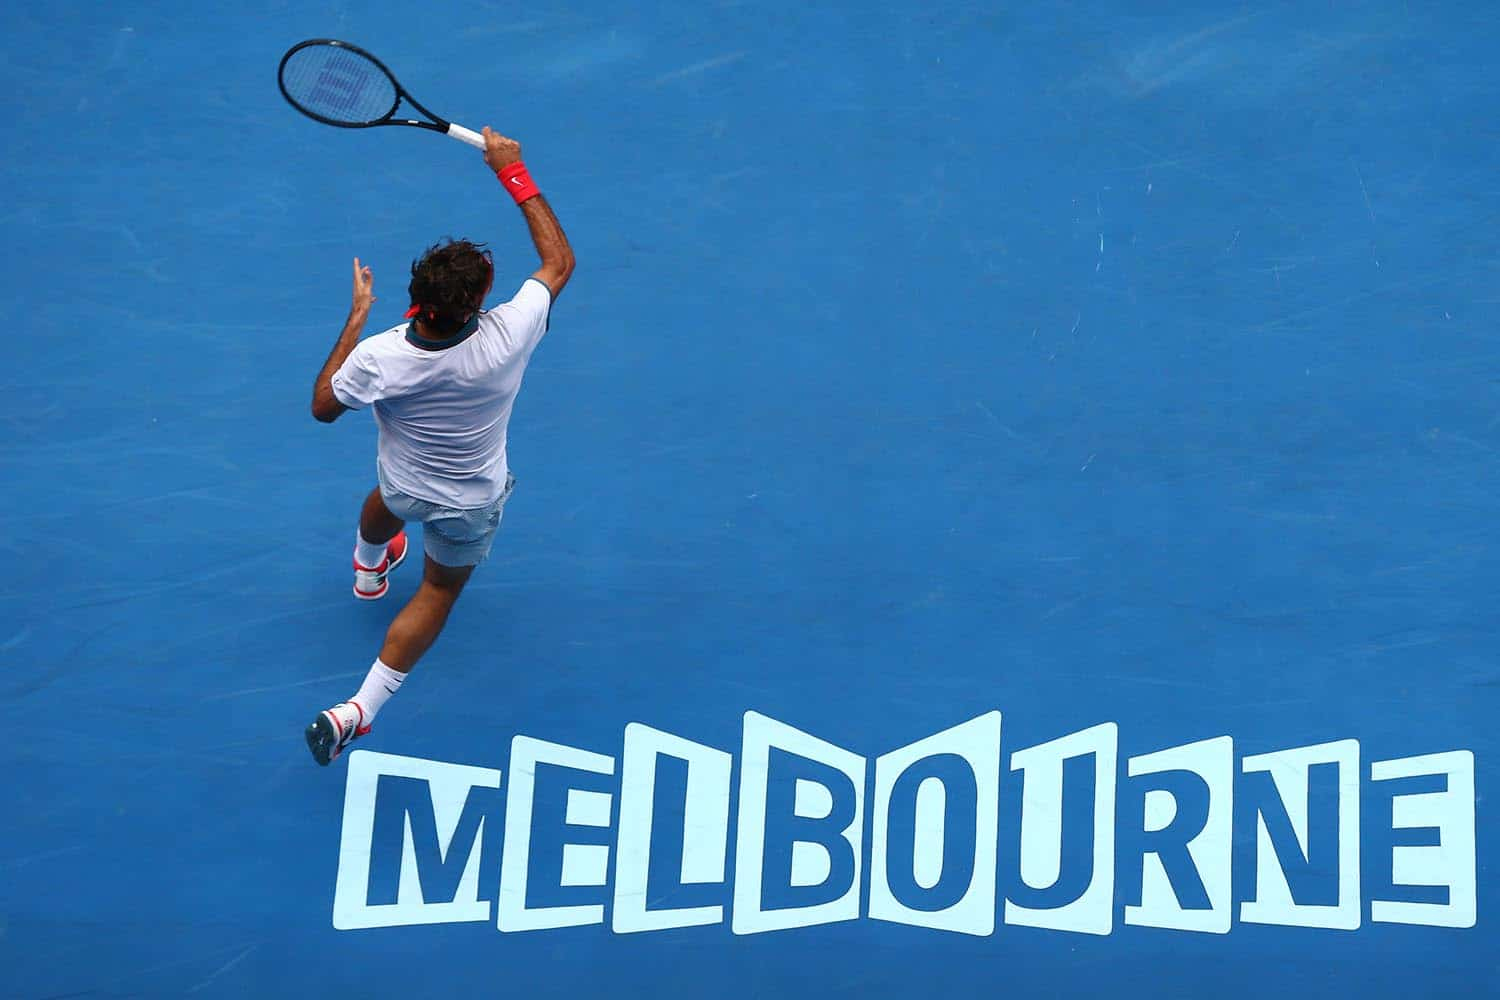 MELBOURNE, AUSTRALIA - JANUARY 18: Roger Federer of Switzerland plays a forehand in his third round match against Teymuraz Gabashvili of Russia during day six of the 2014 Australian Open at Melbourne Park on January 18, 2014 in Melbourne, Australia. (Photo by Ryan Pierse/Getty Images)